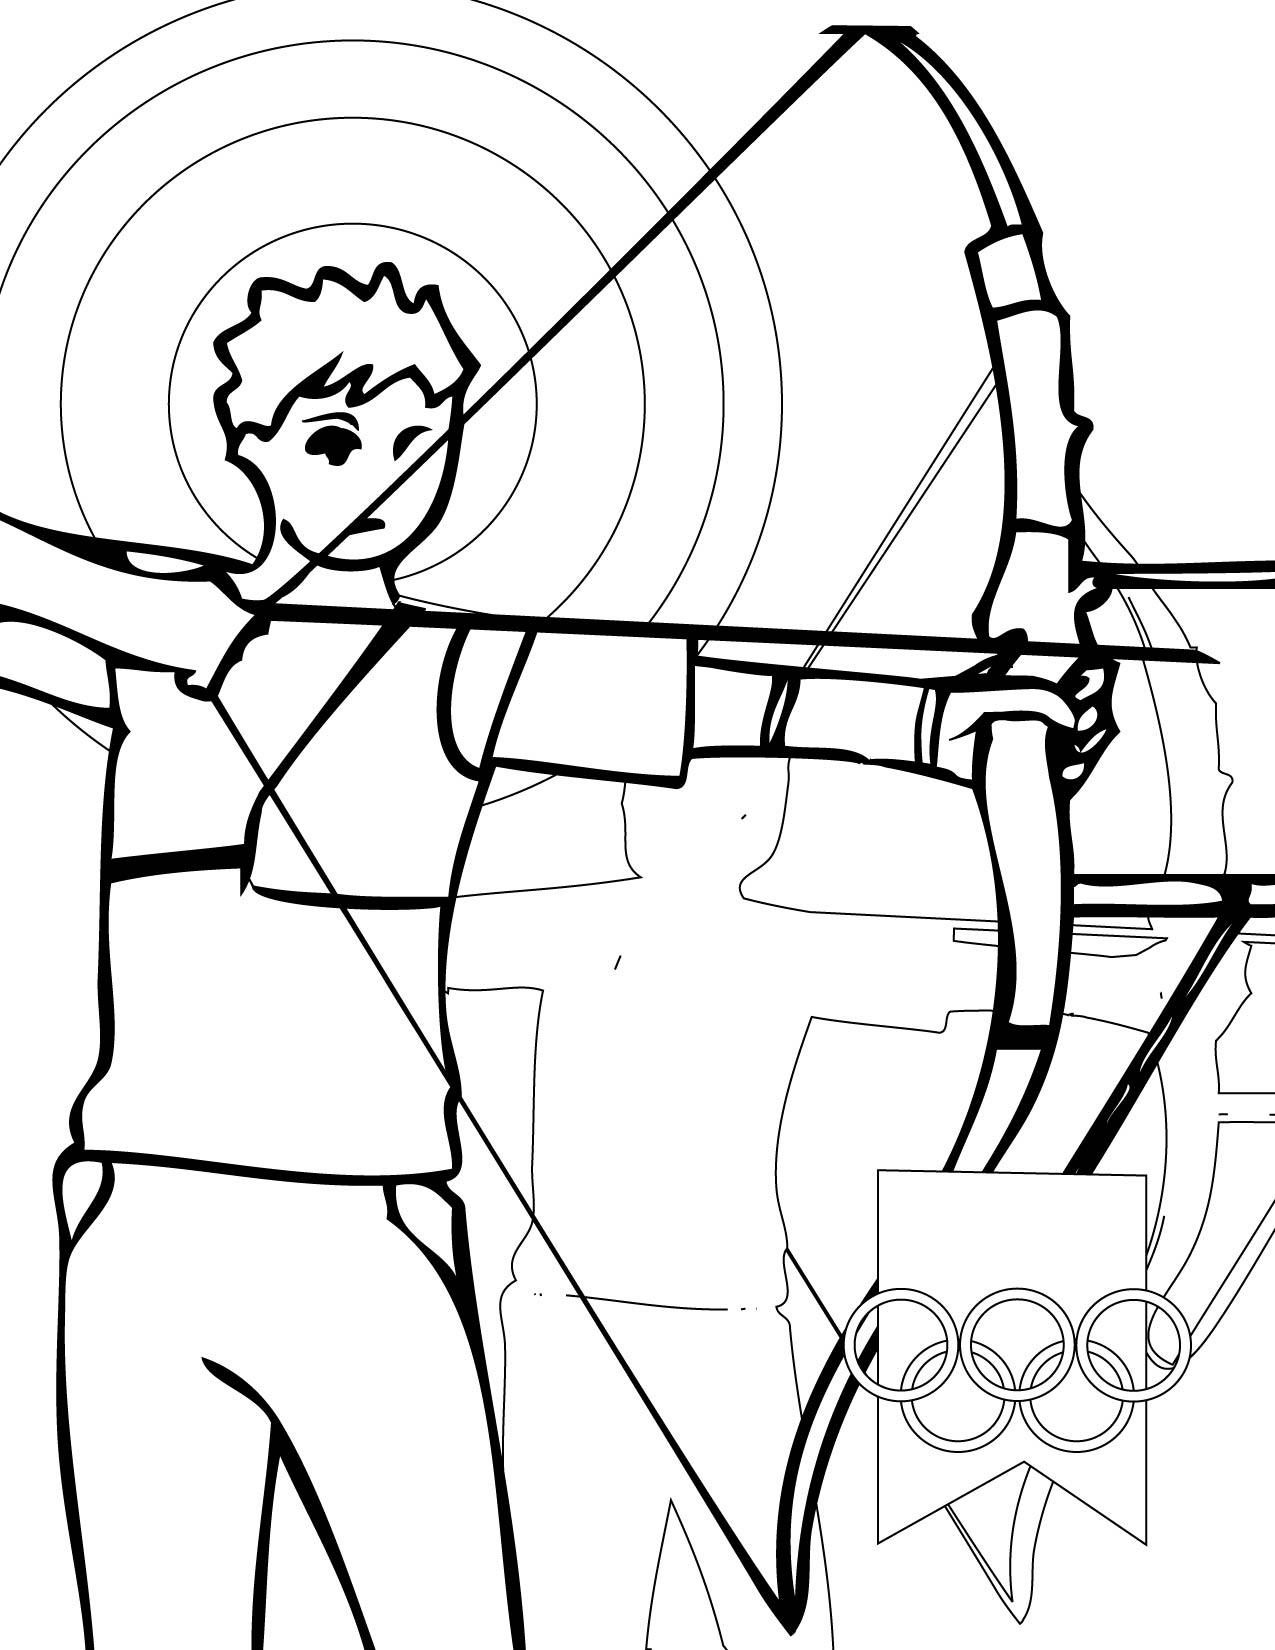 coloring pages archery pictures - photo#20